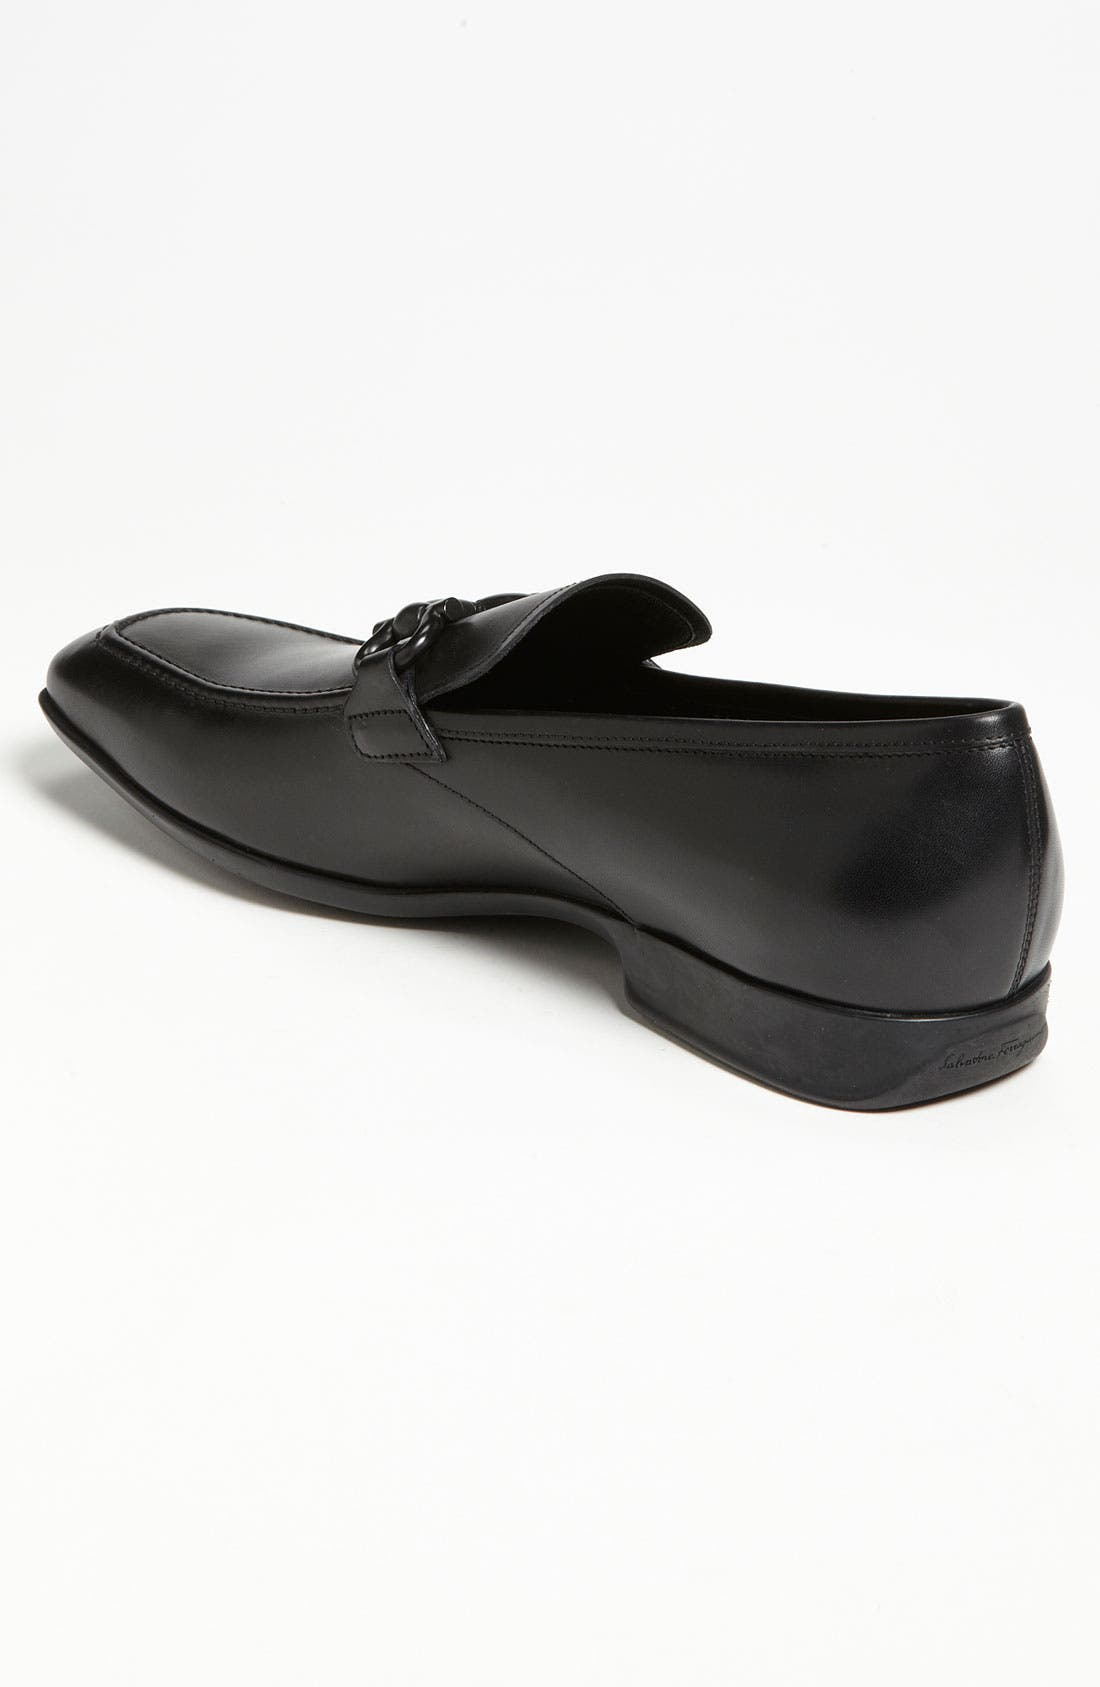 Alternate Image 2  - Salvatore Ferragamo 'Gregory' Loafer (Men)